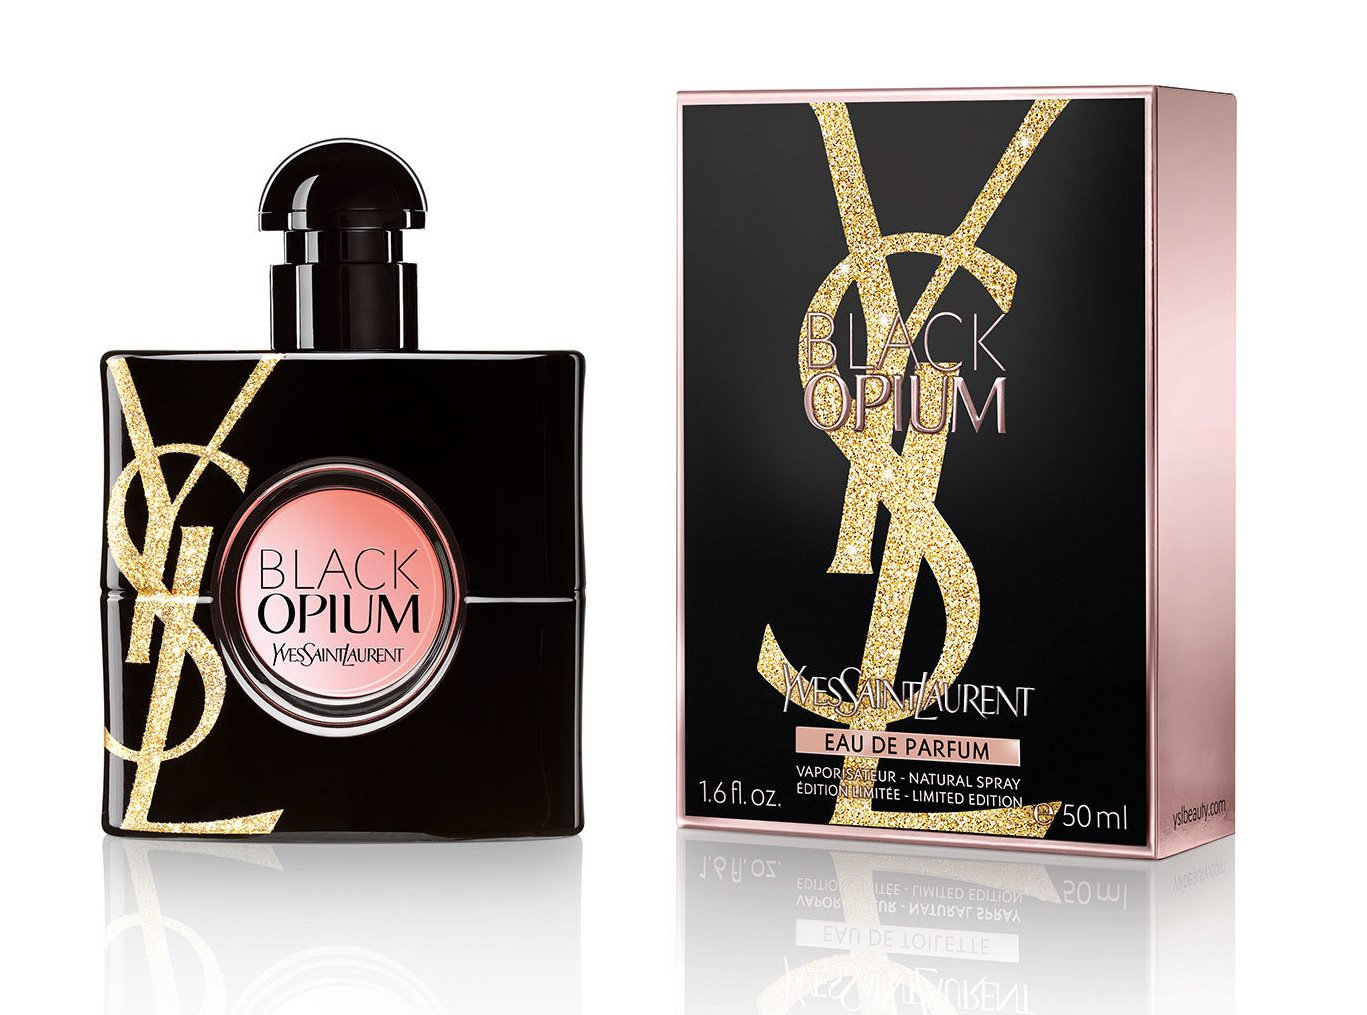 Yves-Saint-Laurent-Black-Opium-Gold-Attraction-Edition-Flacon.jpg